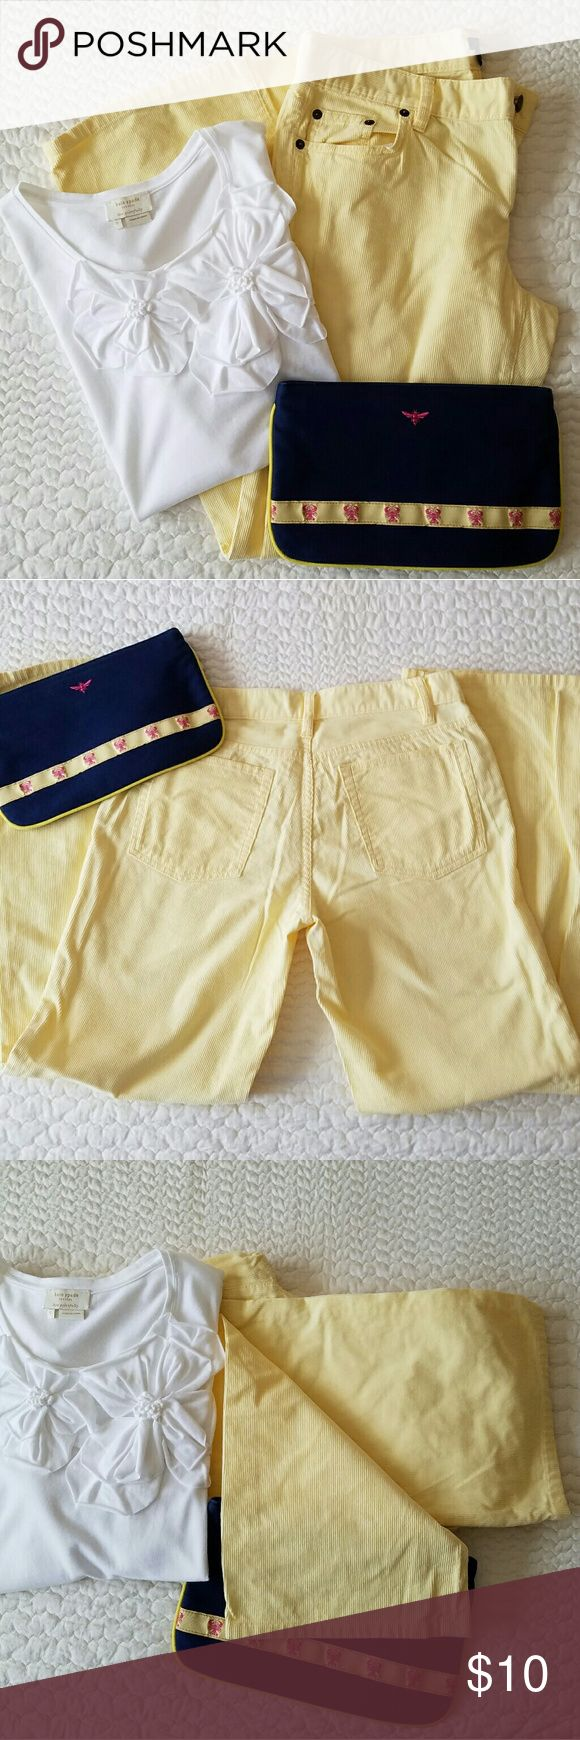 """J. Crew Spring cords Soft yellow cords perfect for spring & a cool summer night. 100% cotton, city fit (not skinny, see last pic). 29 1/2"""" inseam. Clutch available in another listing, makes a great bundle! Save 15%! J. Crew Pants Boot Cut & Flare"""